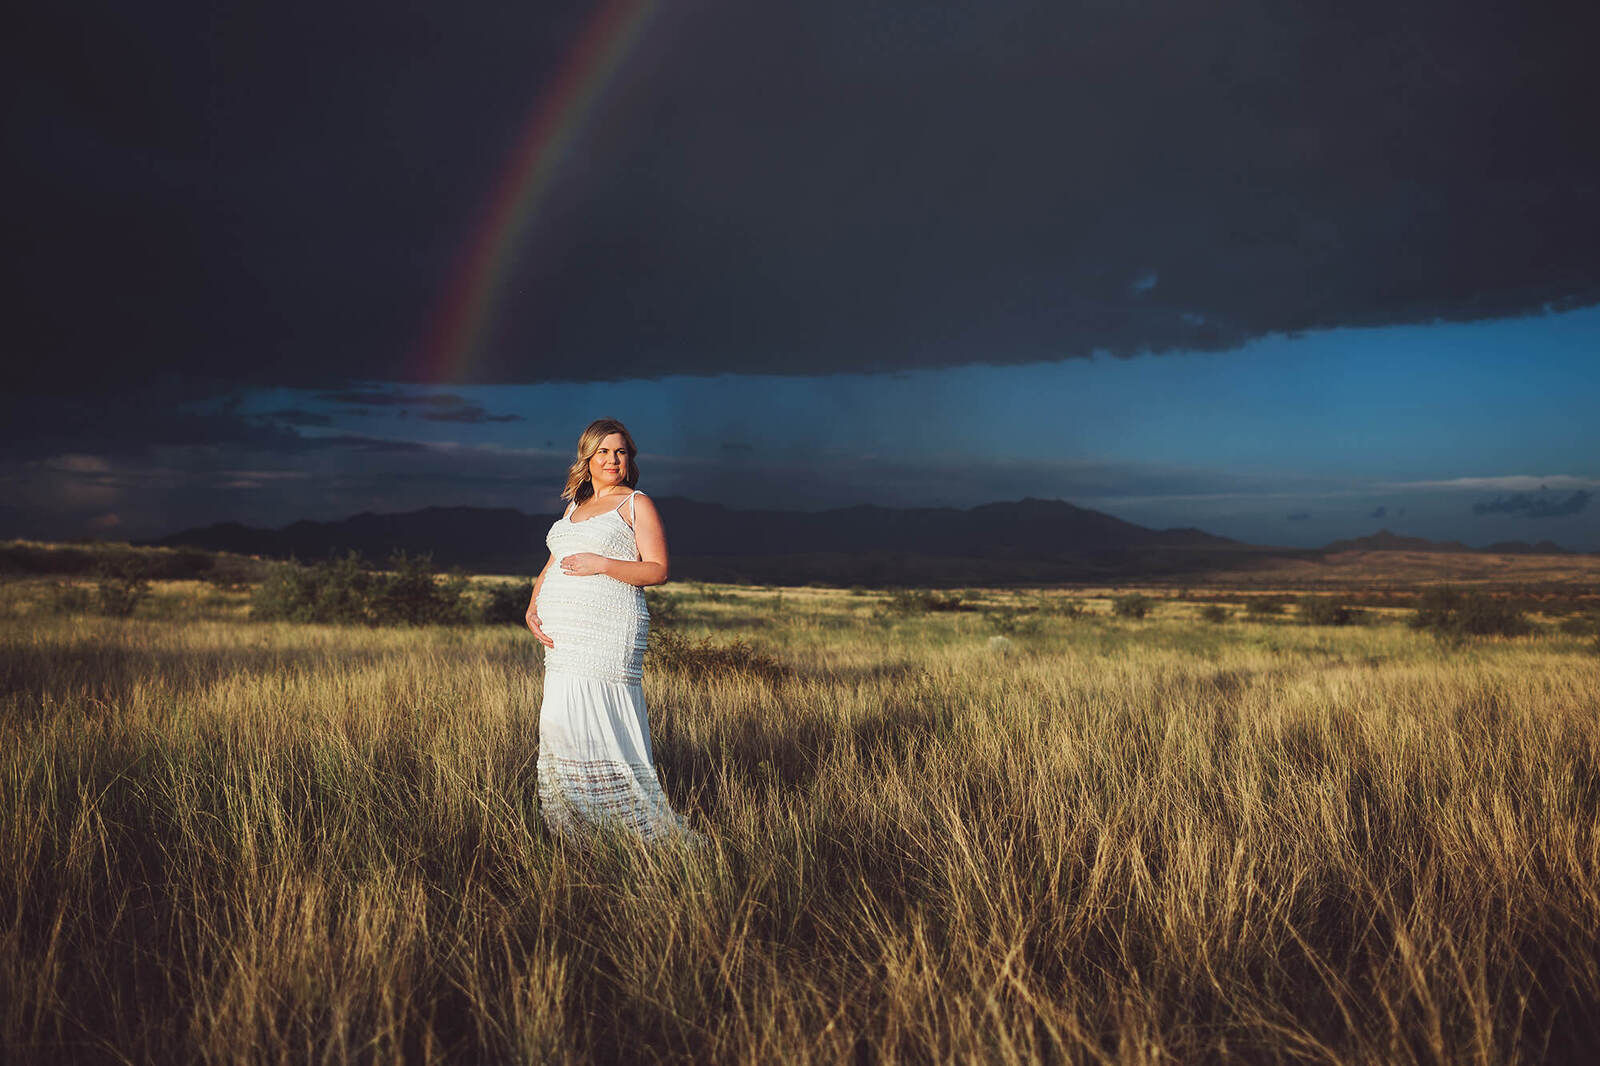 A summer storm in Sonoita produces a rainbow during a breathtaking maternity session